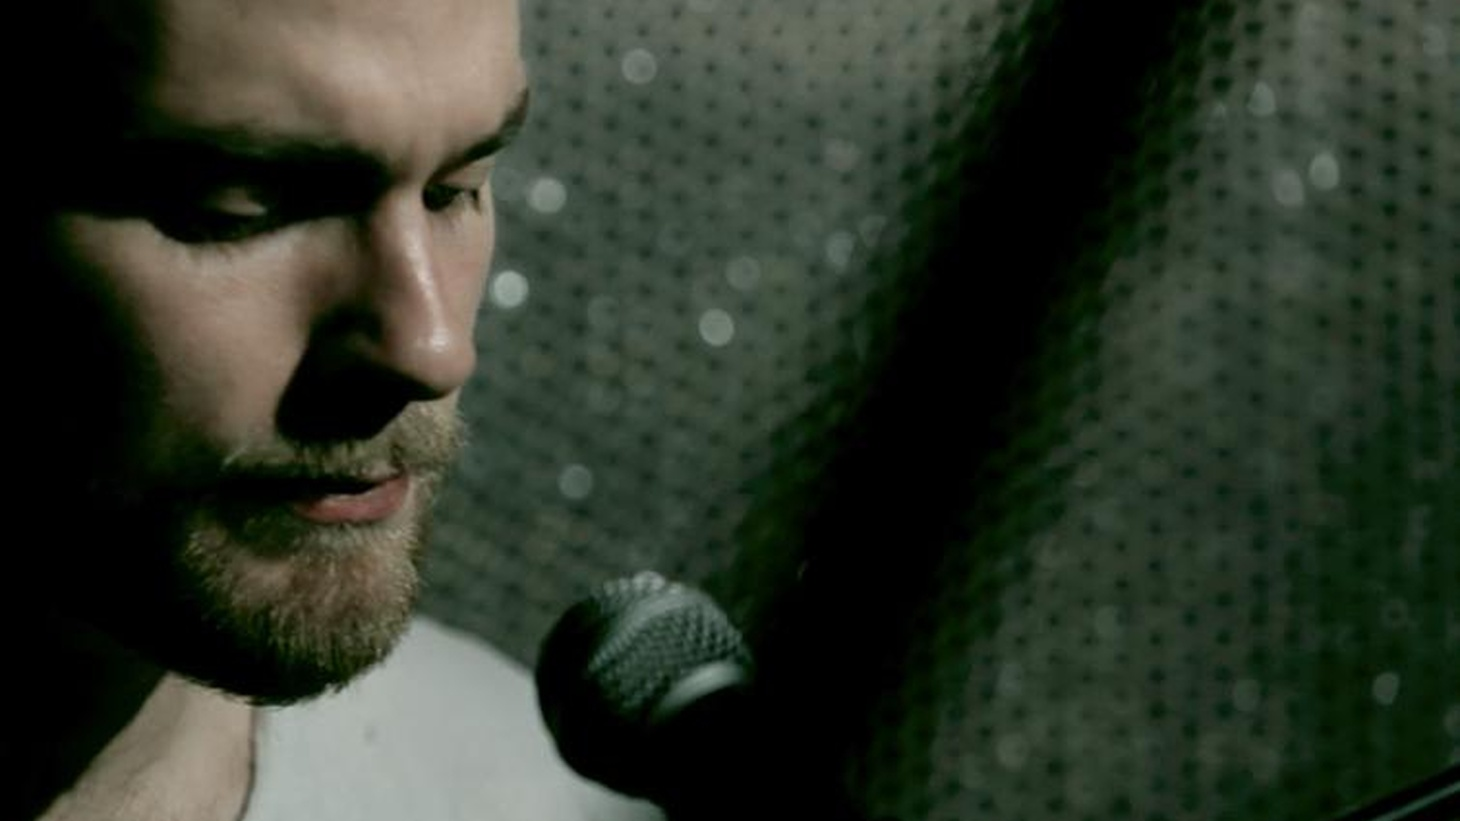 Icelandic artist Ásgeir sings both in English and his native tongue.